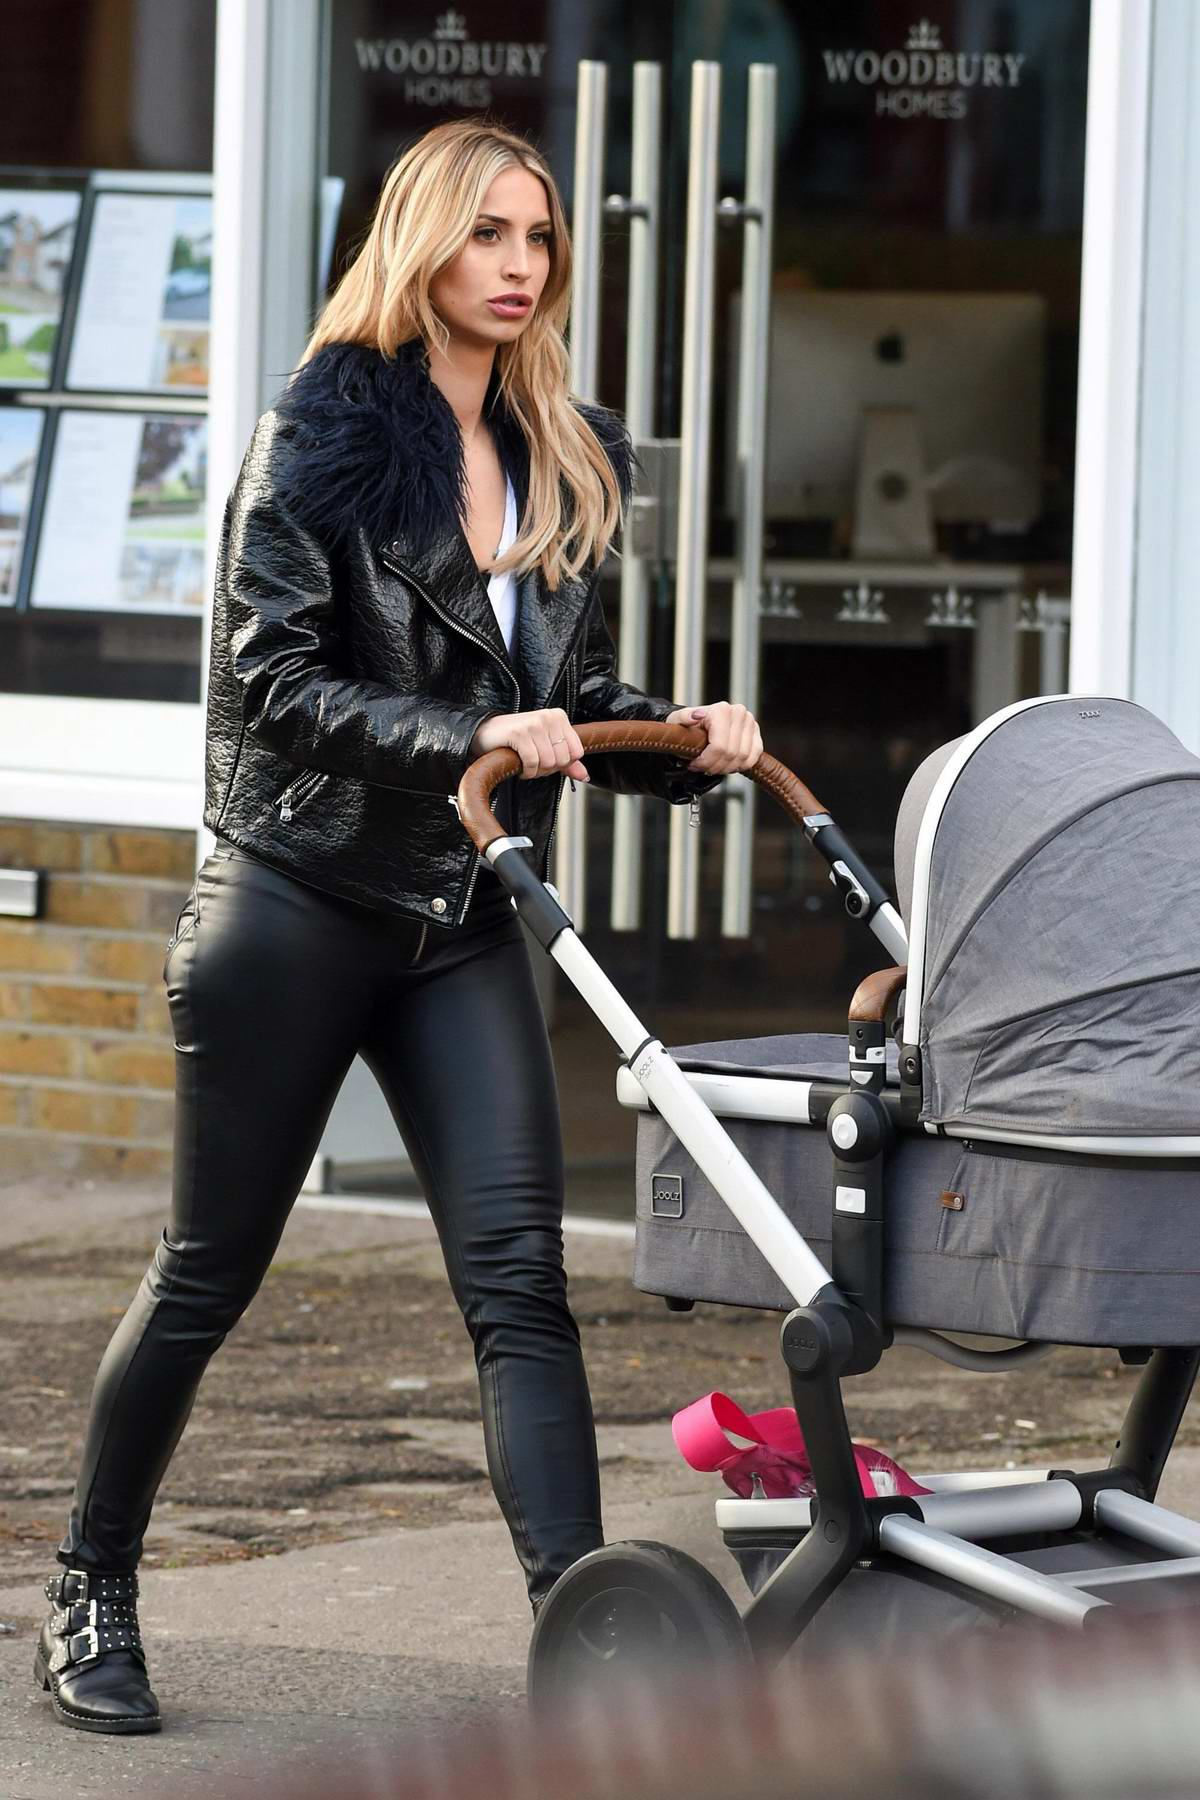 Ferne McCann carts her baby in a stroller while out in Essex, UK